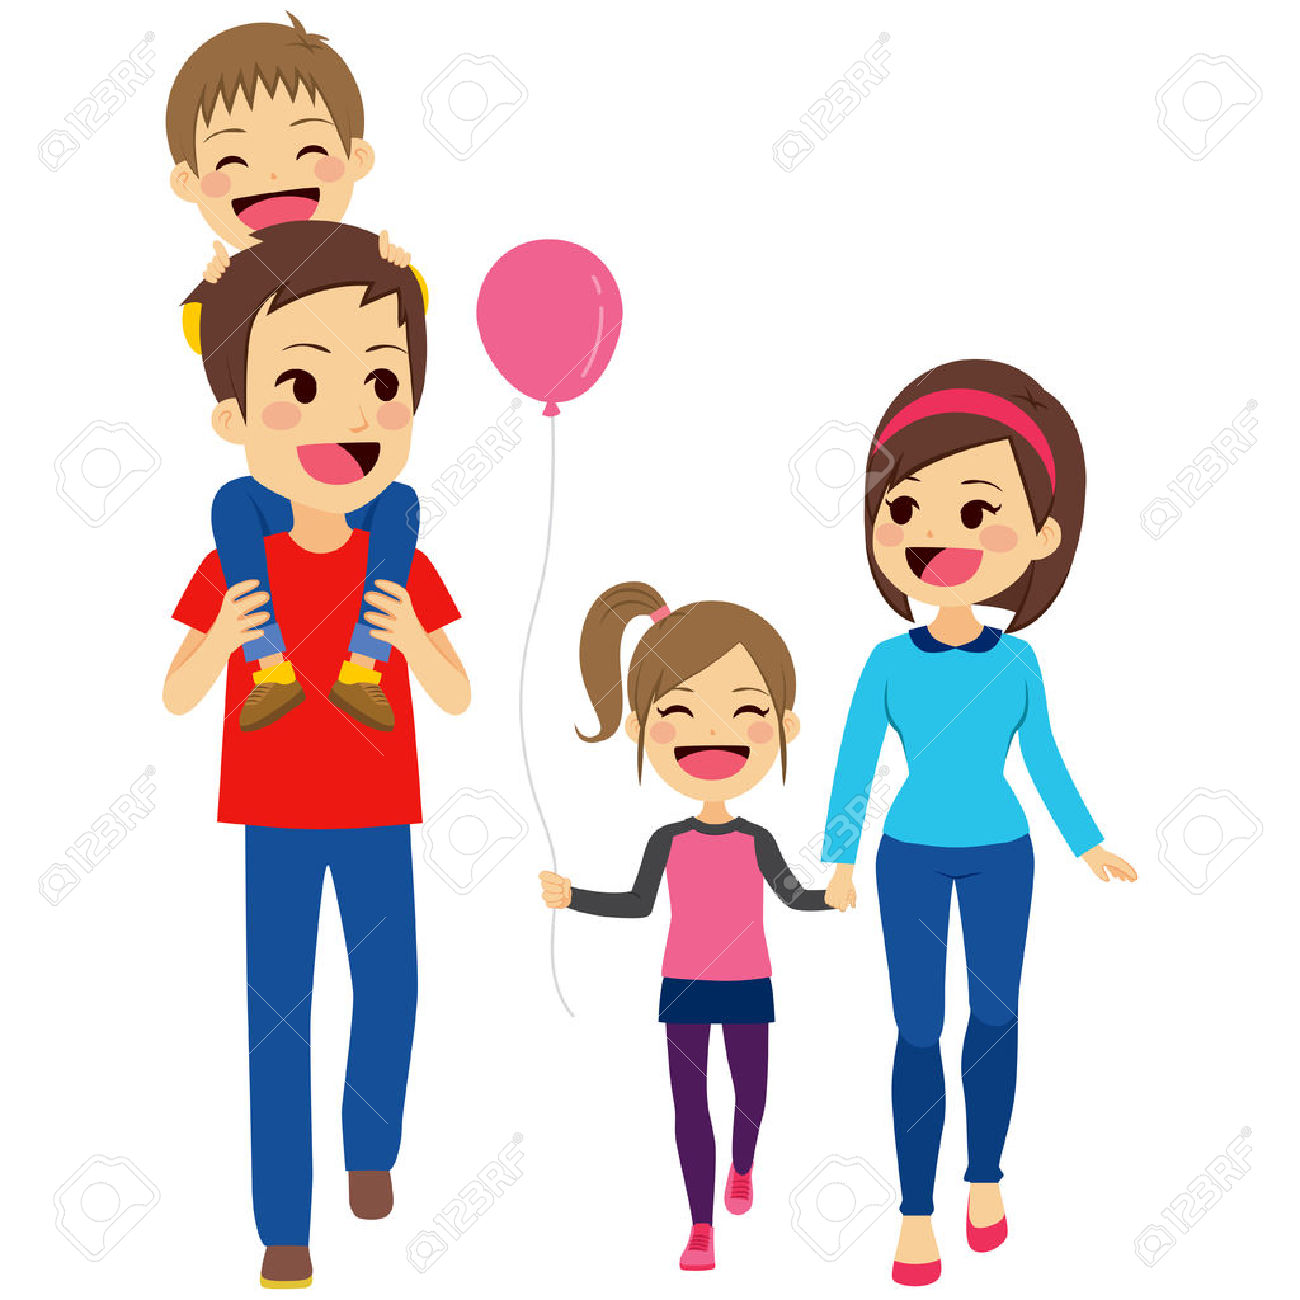 Hiking clipart family hike. Free download best